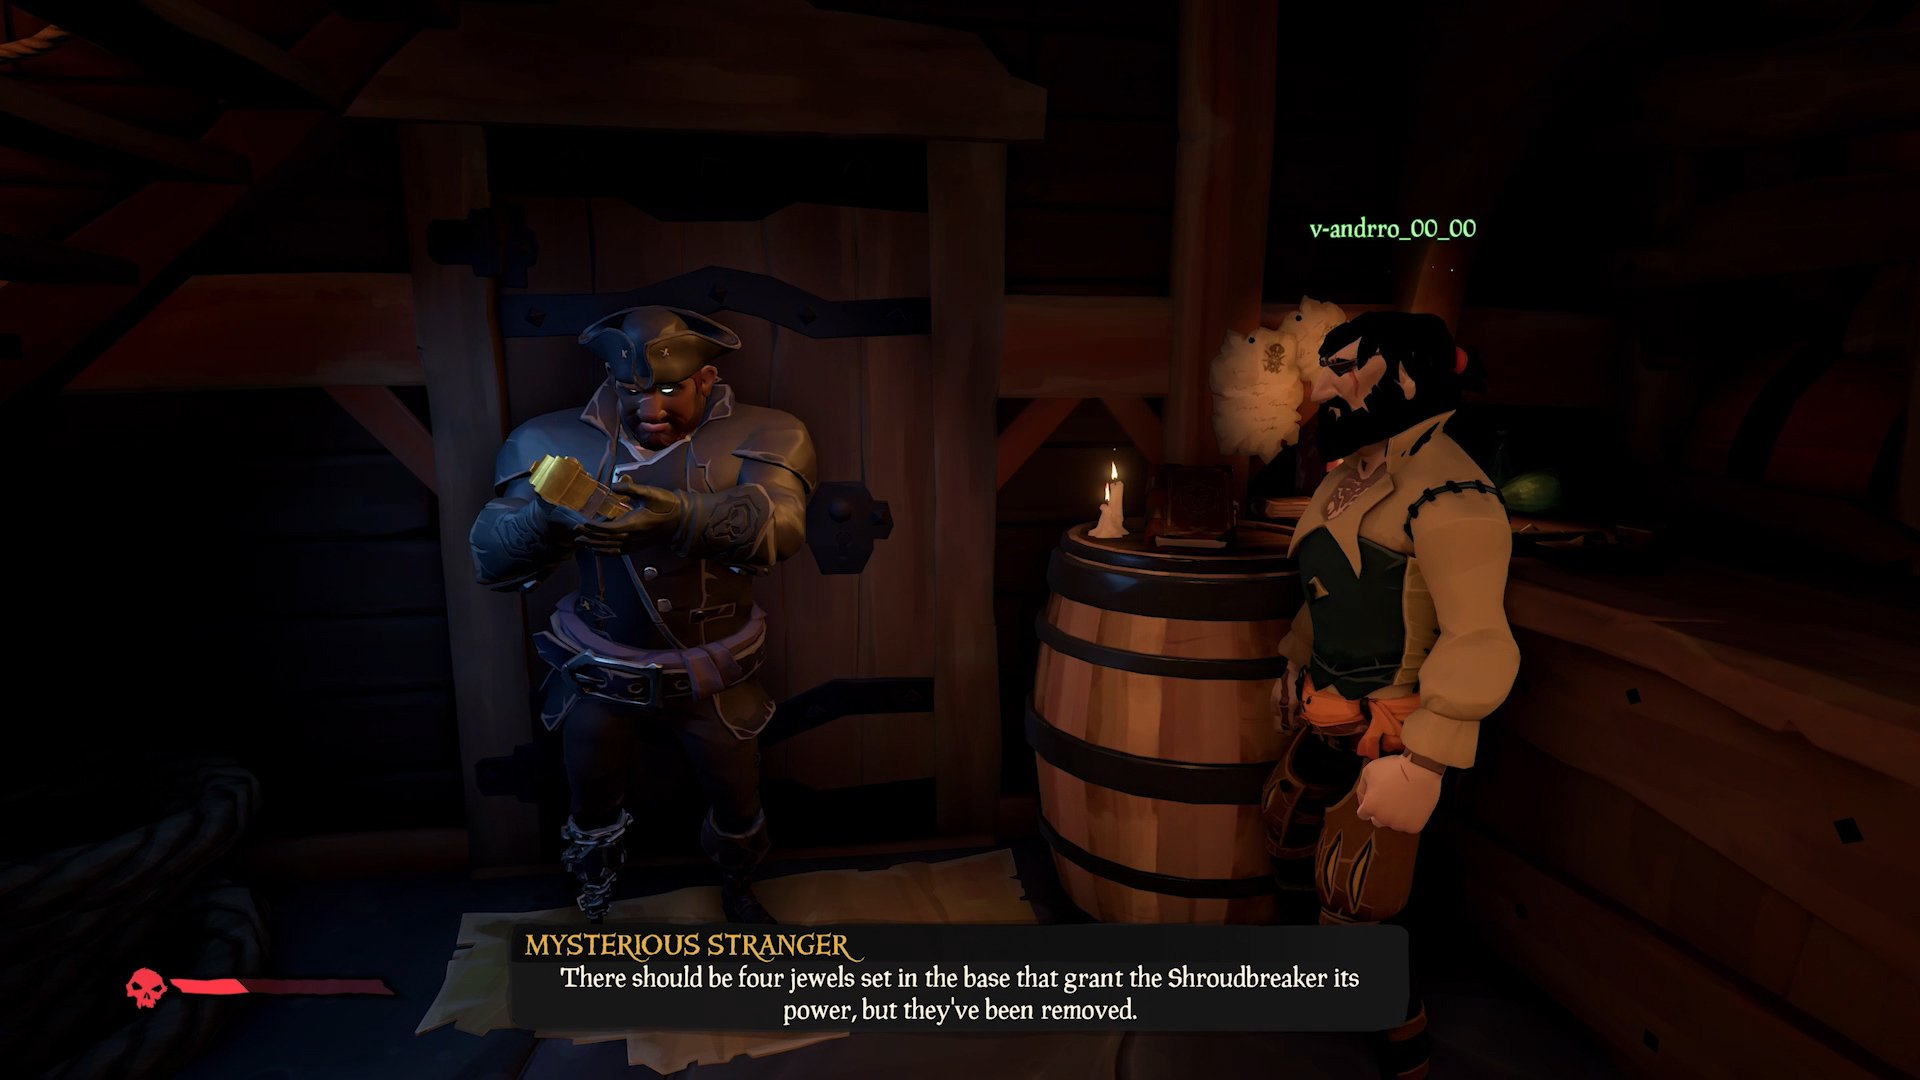 Sea of Thieves: Tall Tales campaign hands-on impressions